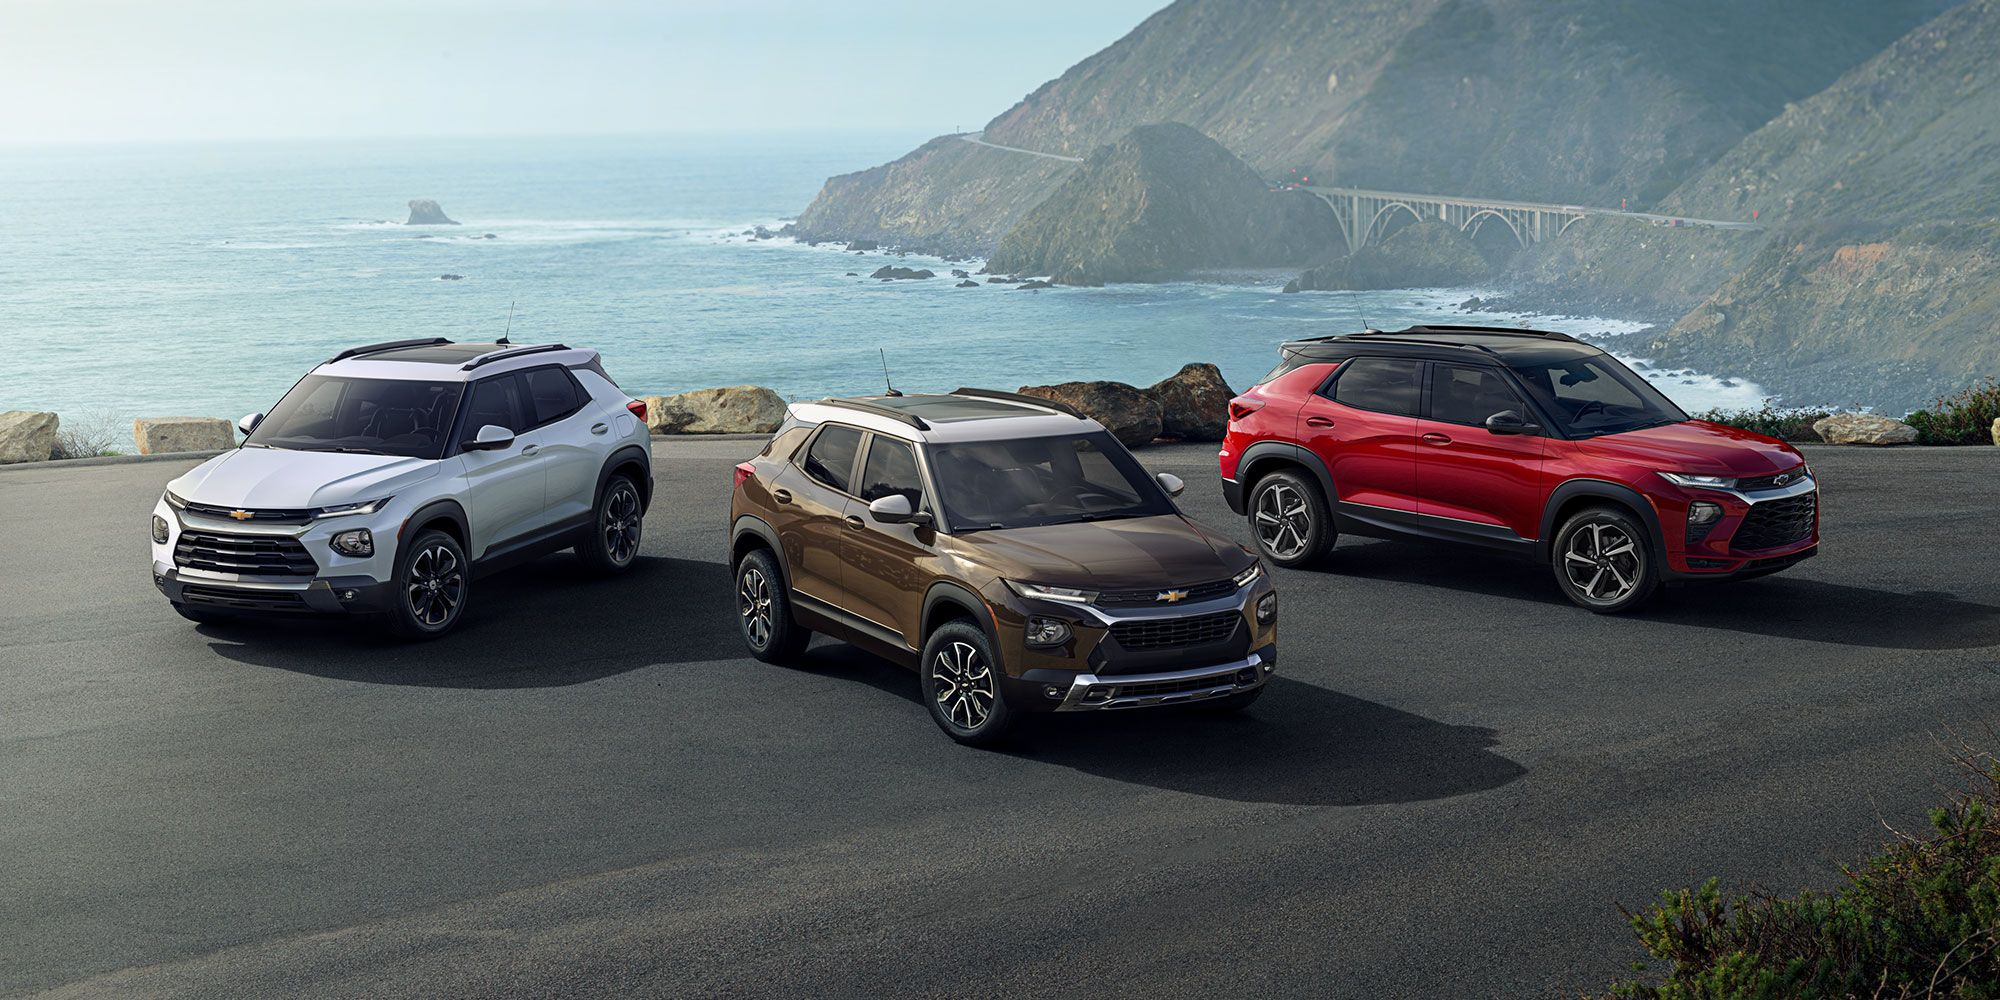 What is the MPG of the 2021 Chevrolet Trailblazer?